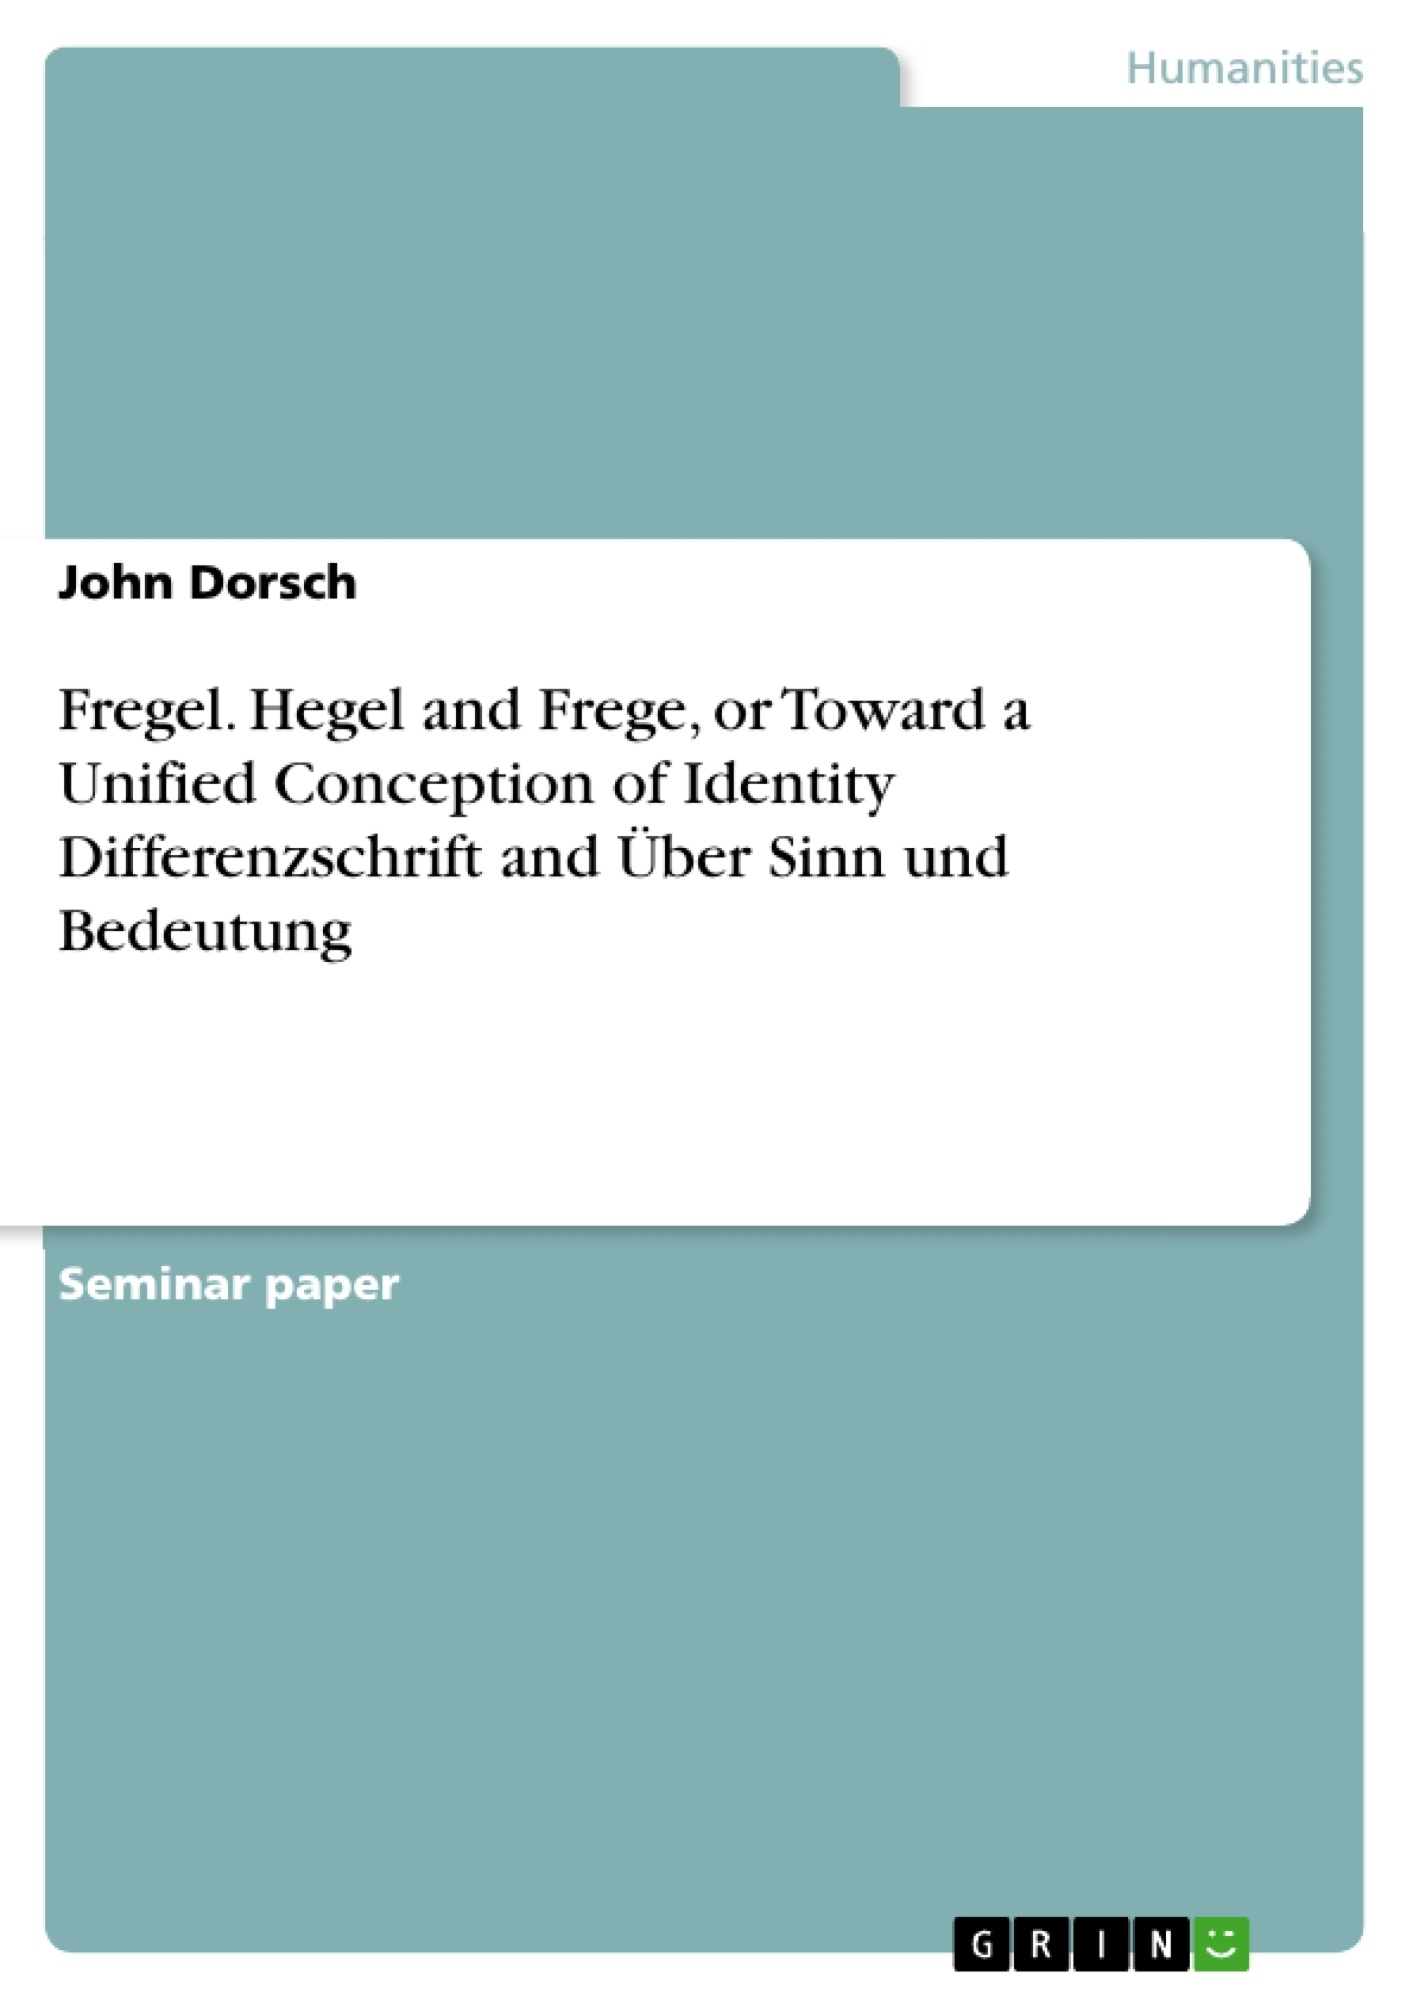 Title: Fregel. Hegel and Frege, or Toward a Unified Conception of Identity Differenzschrift and Über Sinn und Bedeutung